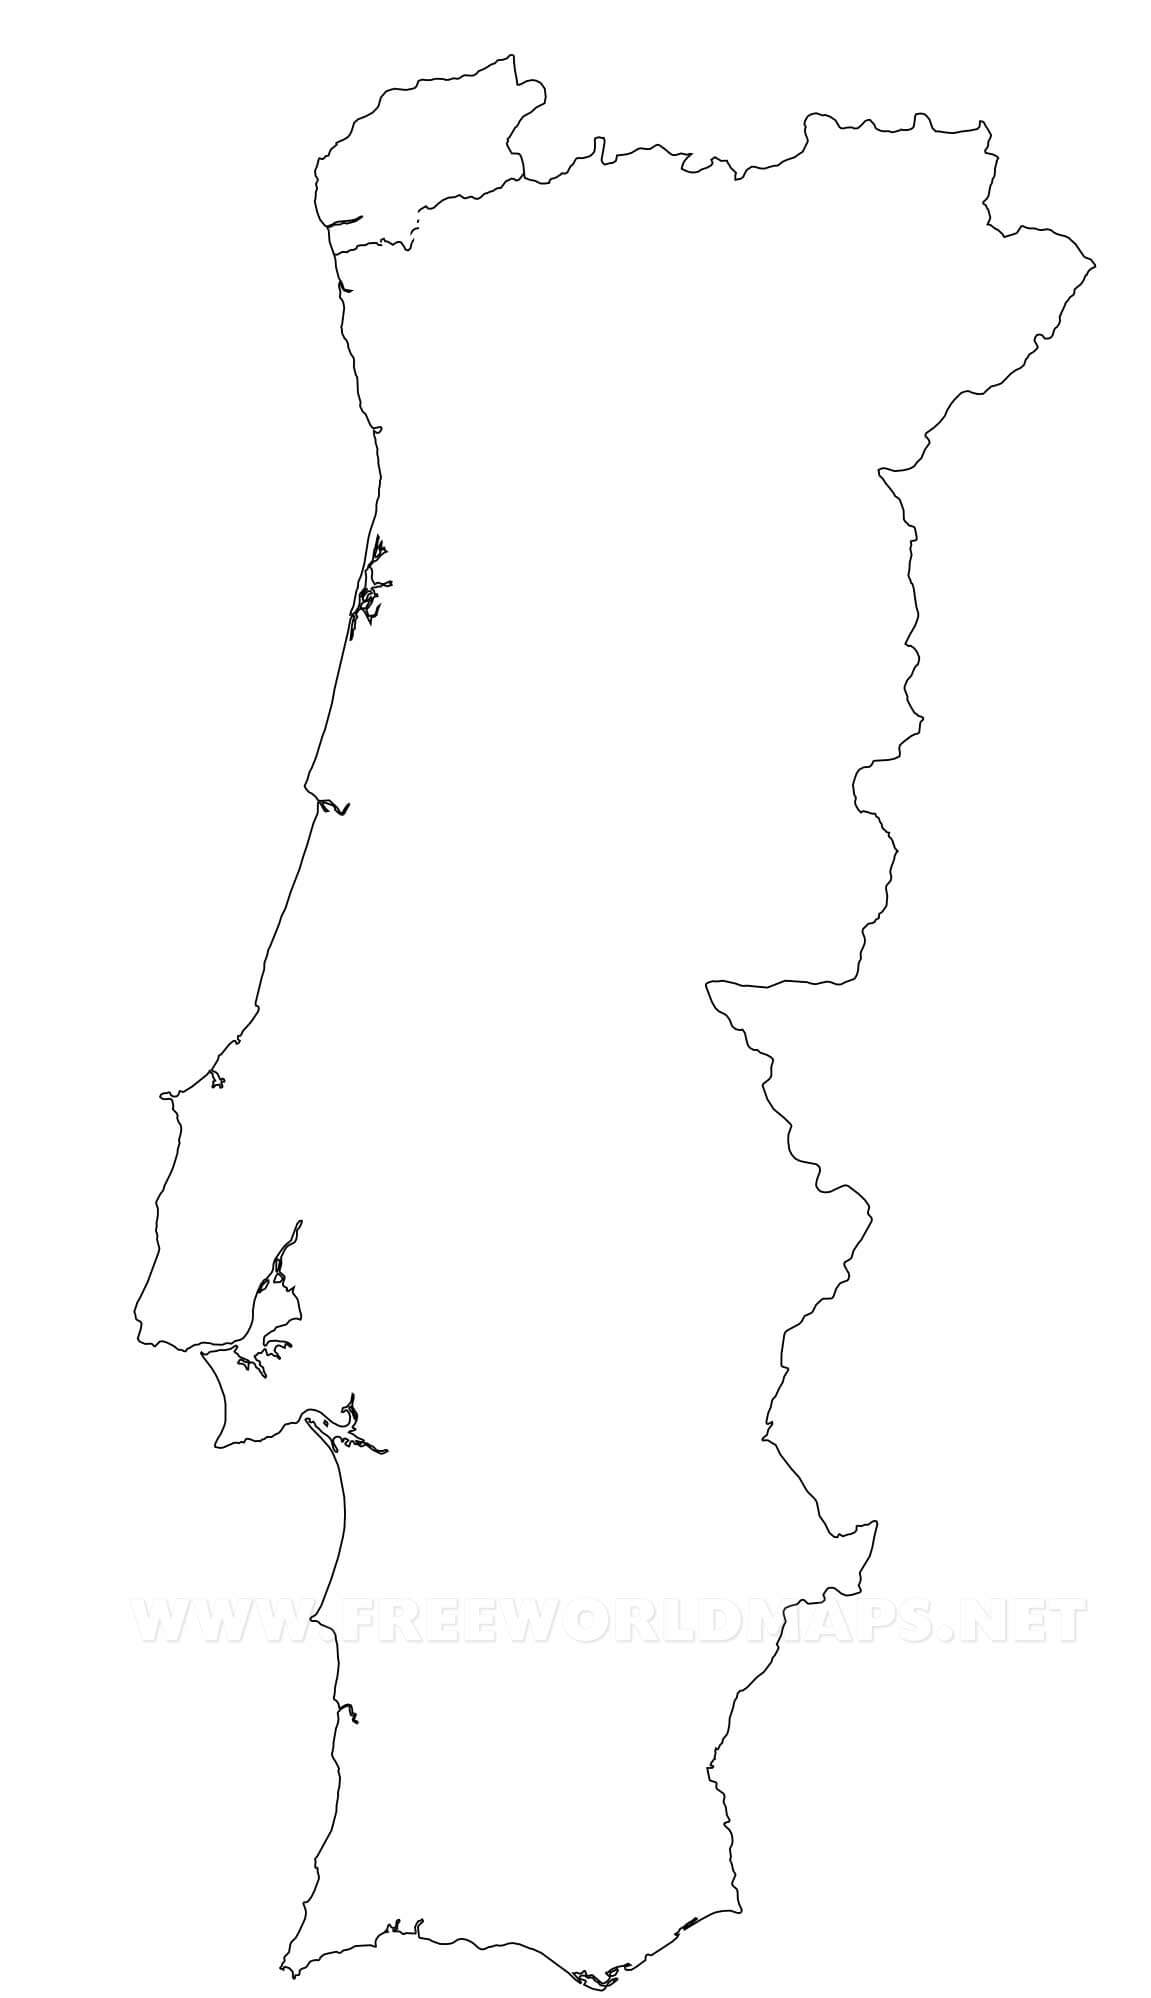 Portugal Political Map on blank map of washington, blank map of rome, blank map of sydney, blank map of caribbean sea, blank map of cape town, blank map of oahu, blank map of mexico city, blank map of buenos aires, blank map of san francisco, blank map of cozumel, blank map of singapore, blank map of athens, blank map of english channel, blank map of madrid, blank map of la paz, blank map of new england, blank map of northern italy, blank map of macau, blank map of portugal,